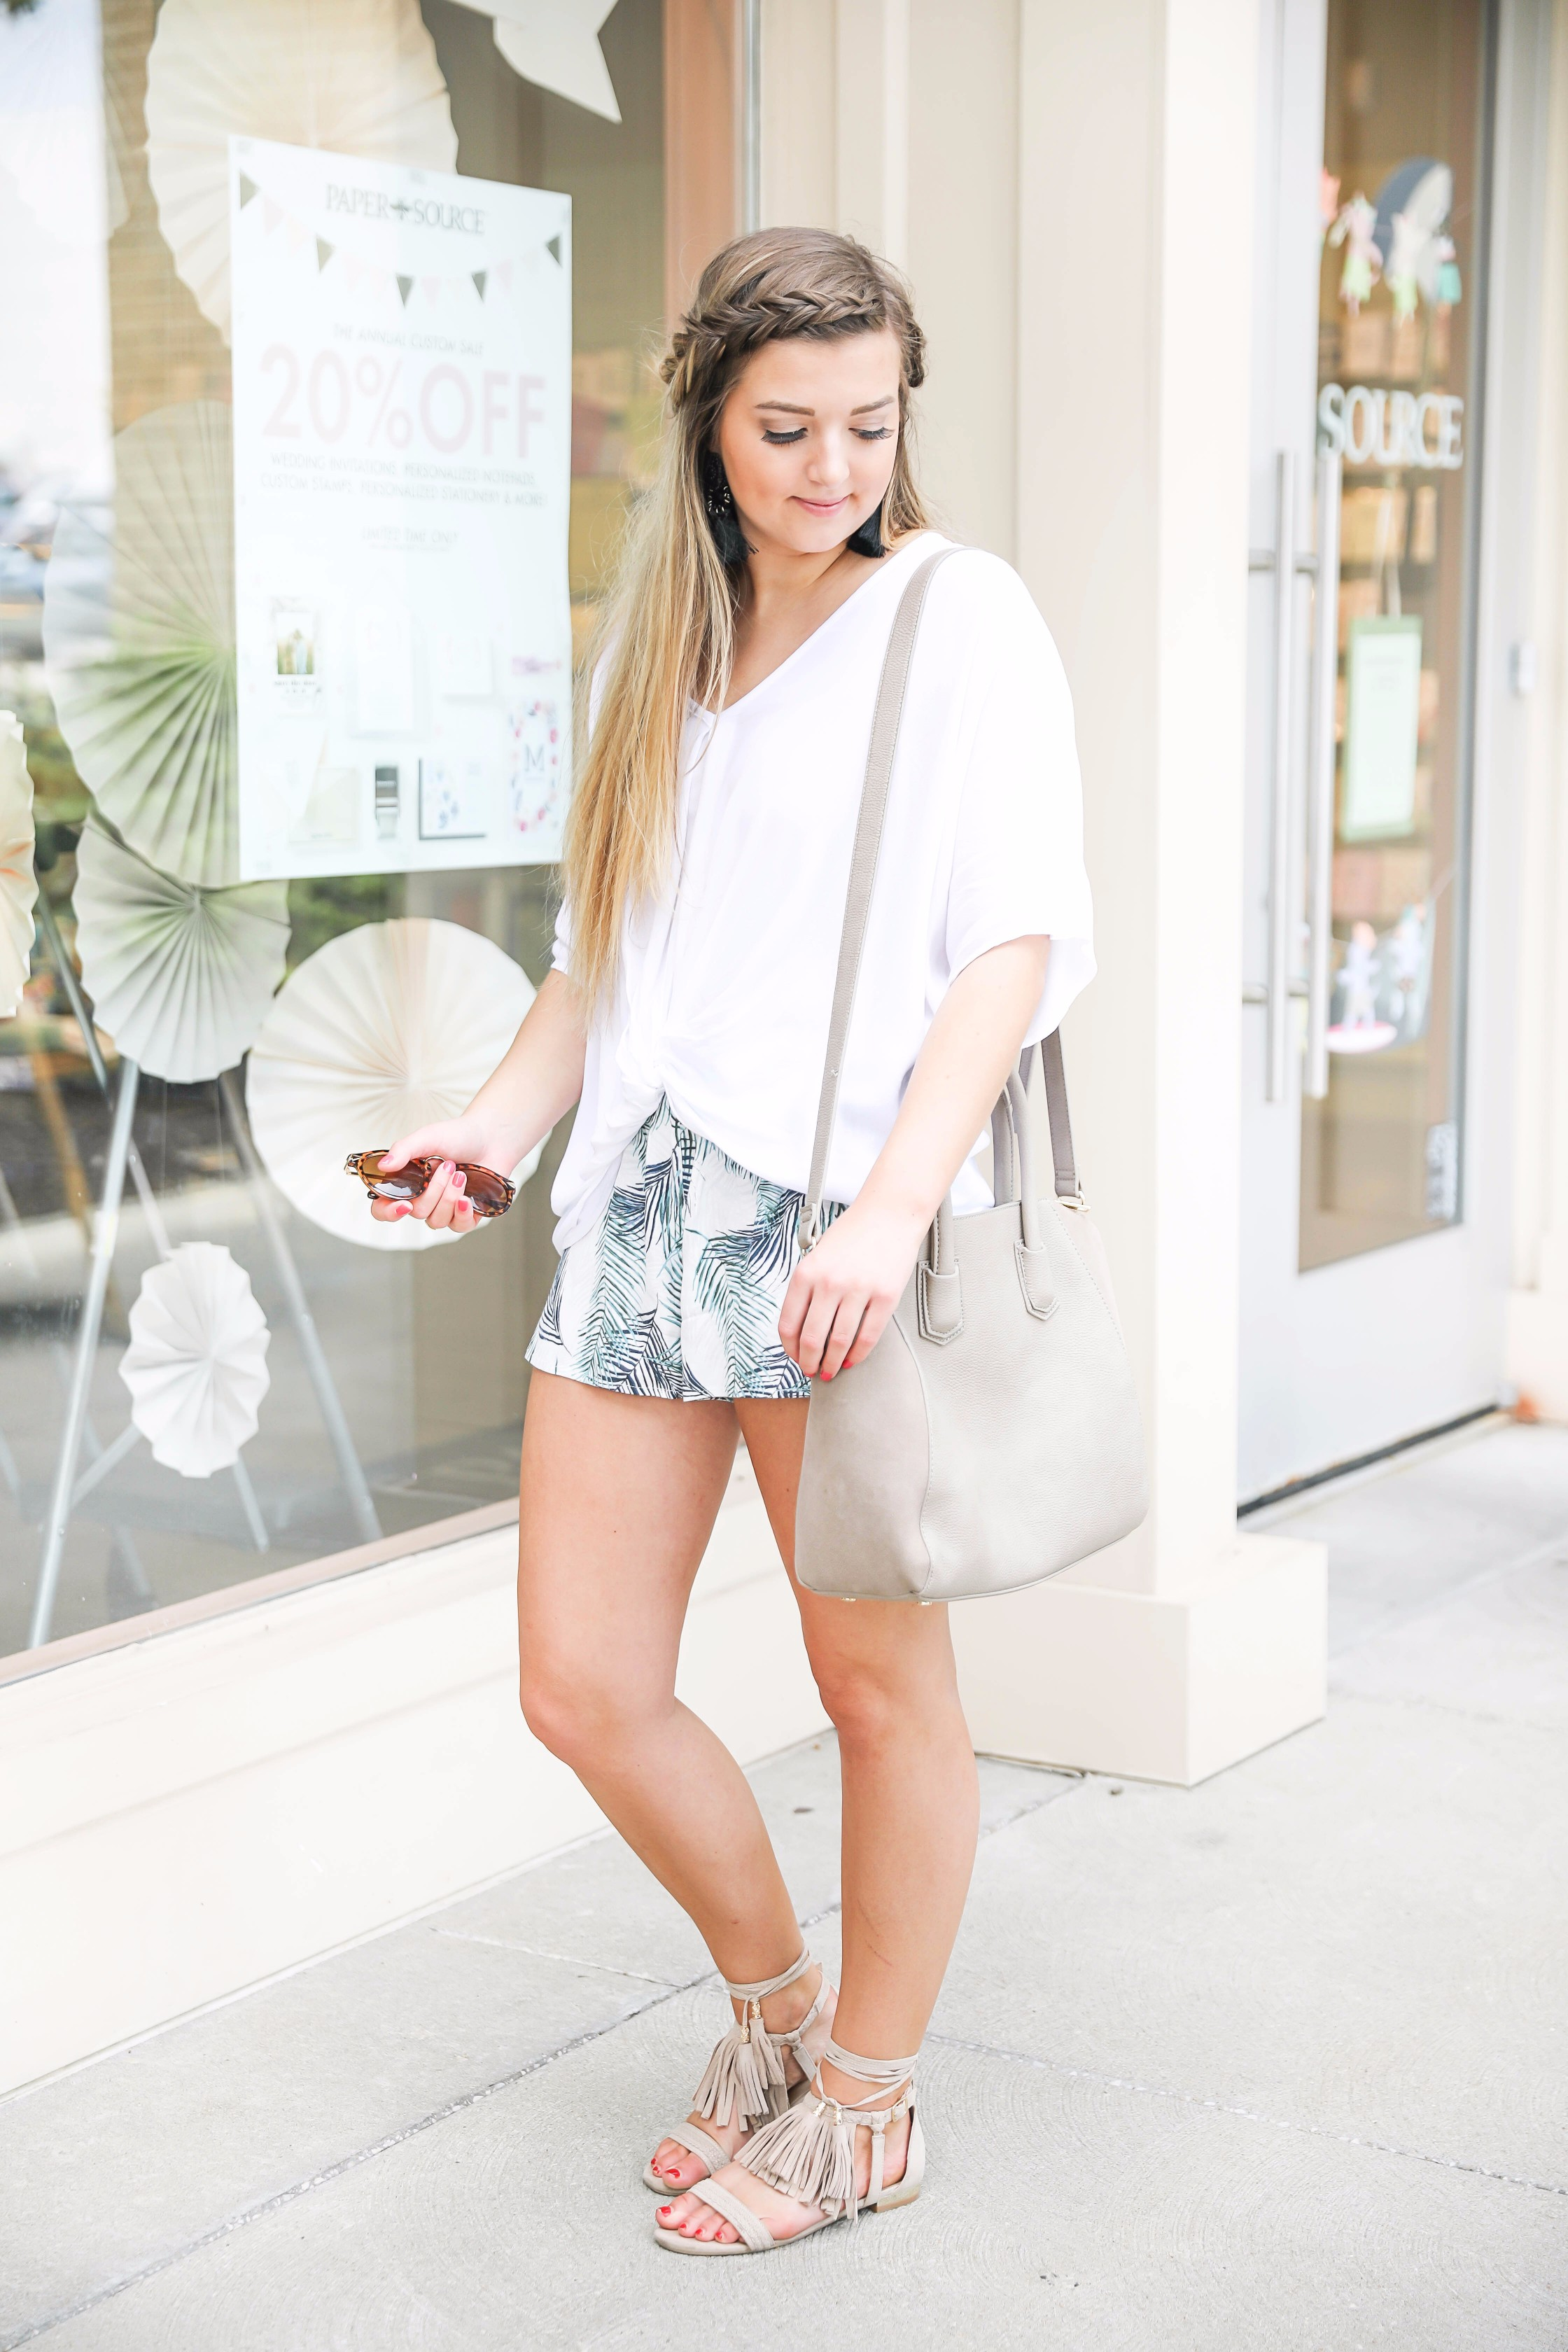 Tropical palm leaf shorts with a white tied tee! Such a cute, simple outfit. I did my hair in a crown fishtail braid and paired the look with my favorite black tassel earrings that are $13 and a fun bag from the Nordstrom Sale! Details on fashion blogger daily dose of charm by lauren lindmark